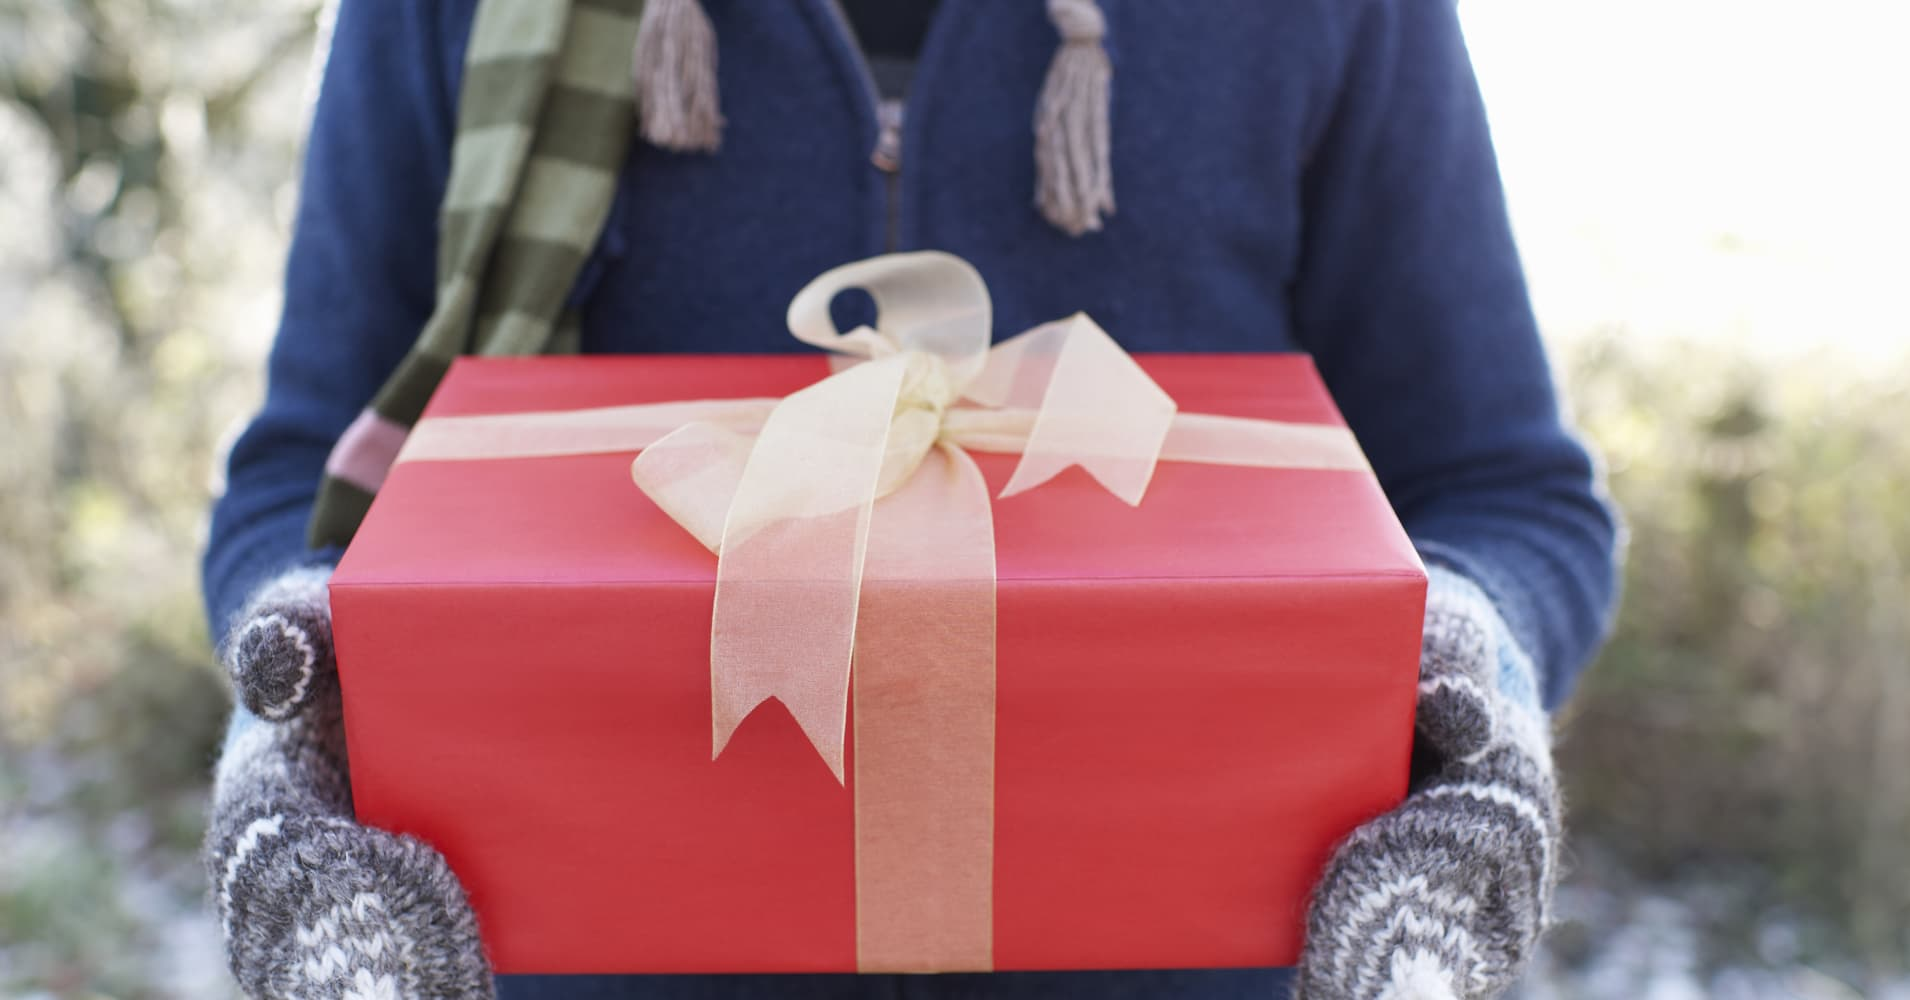 20 great holiday gifts under 50 - Best Christmas Gifts Under 50